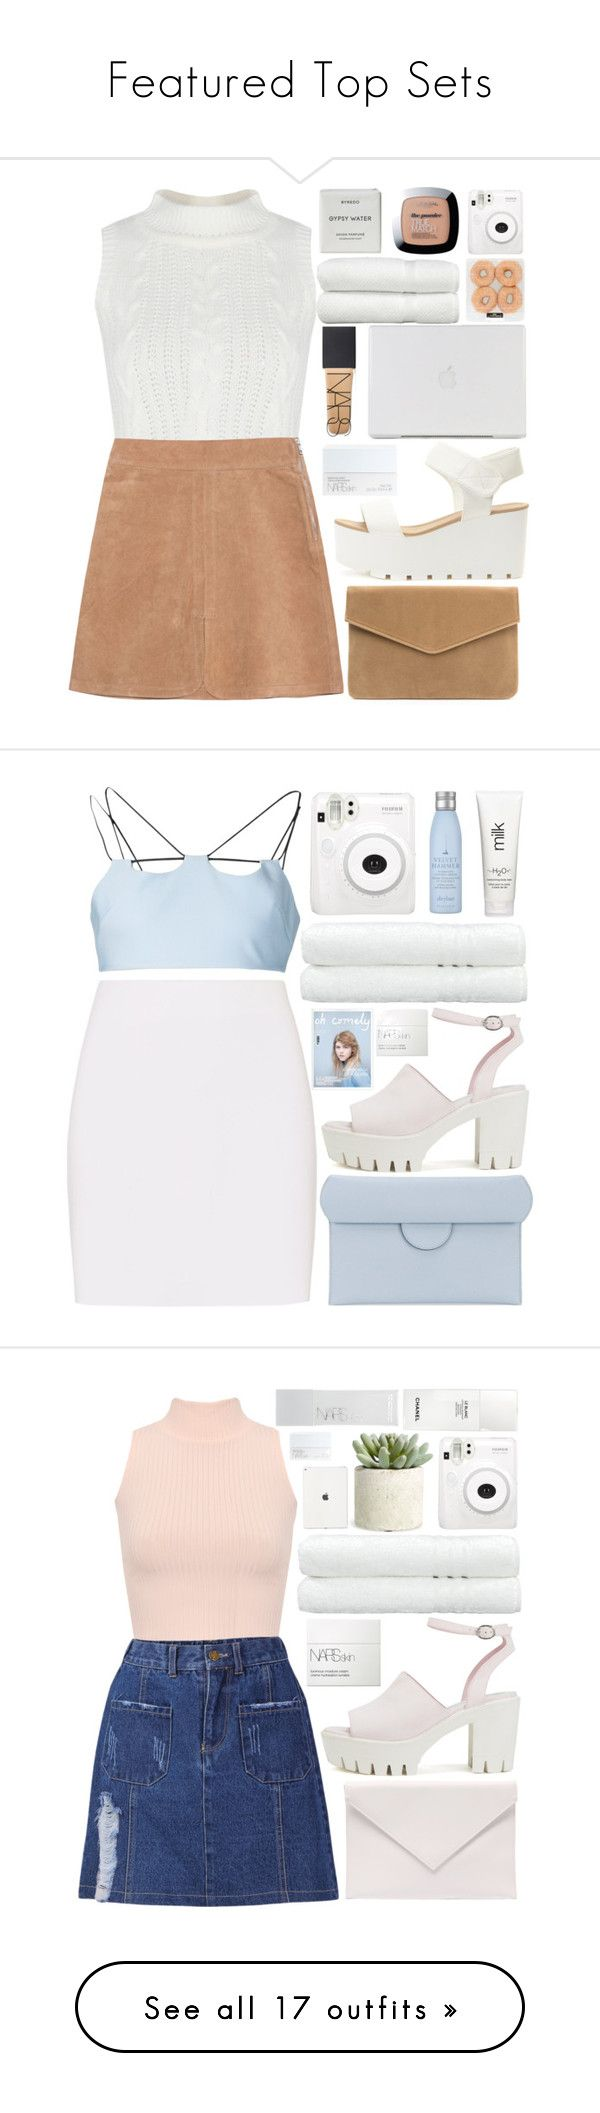 """""""Featured Top Sets"""" by charli-oakeby ❤ liked on Polyvore featuring See by Chloé, Fuji, Linum Home Textiles, NARS Cosmetics, Byredo, L'Oréal Paris, contest, happy, love and featureme"""